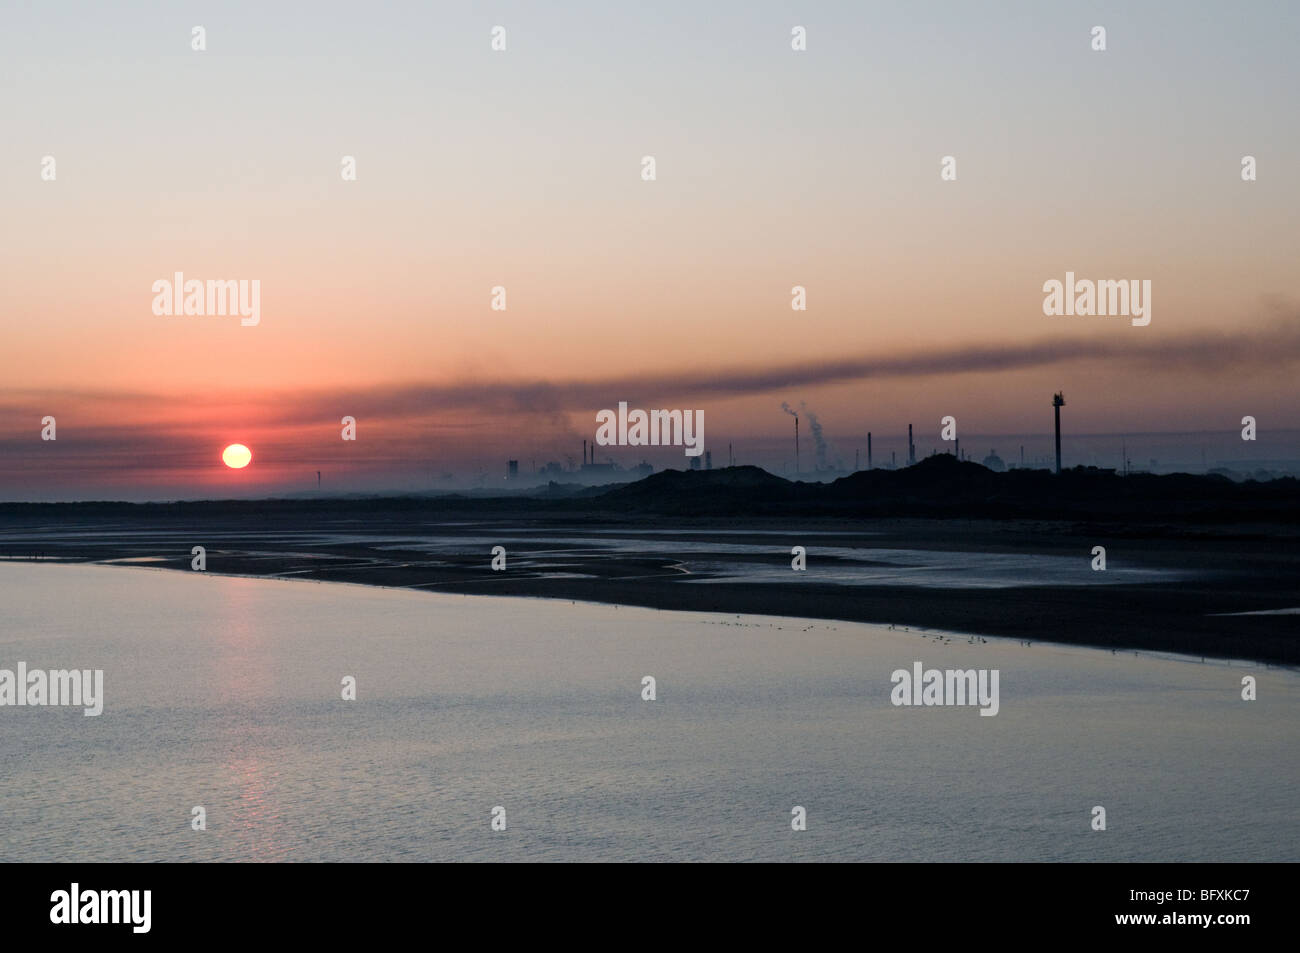 A dawn arrival by ferry at Dunkirk, France. - Stock Image